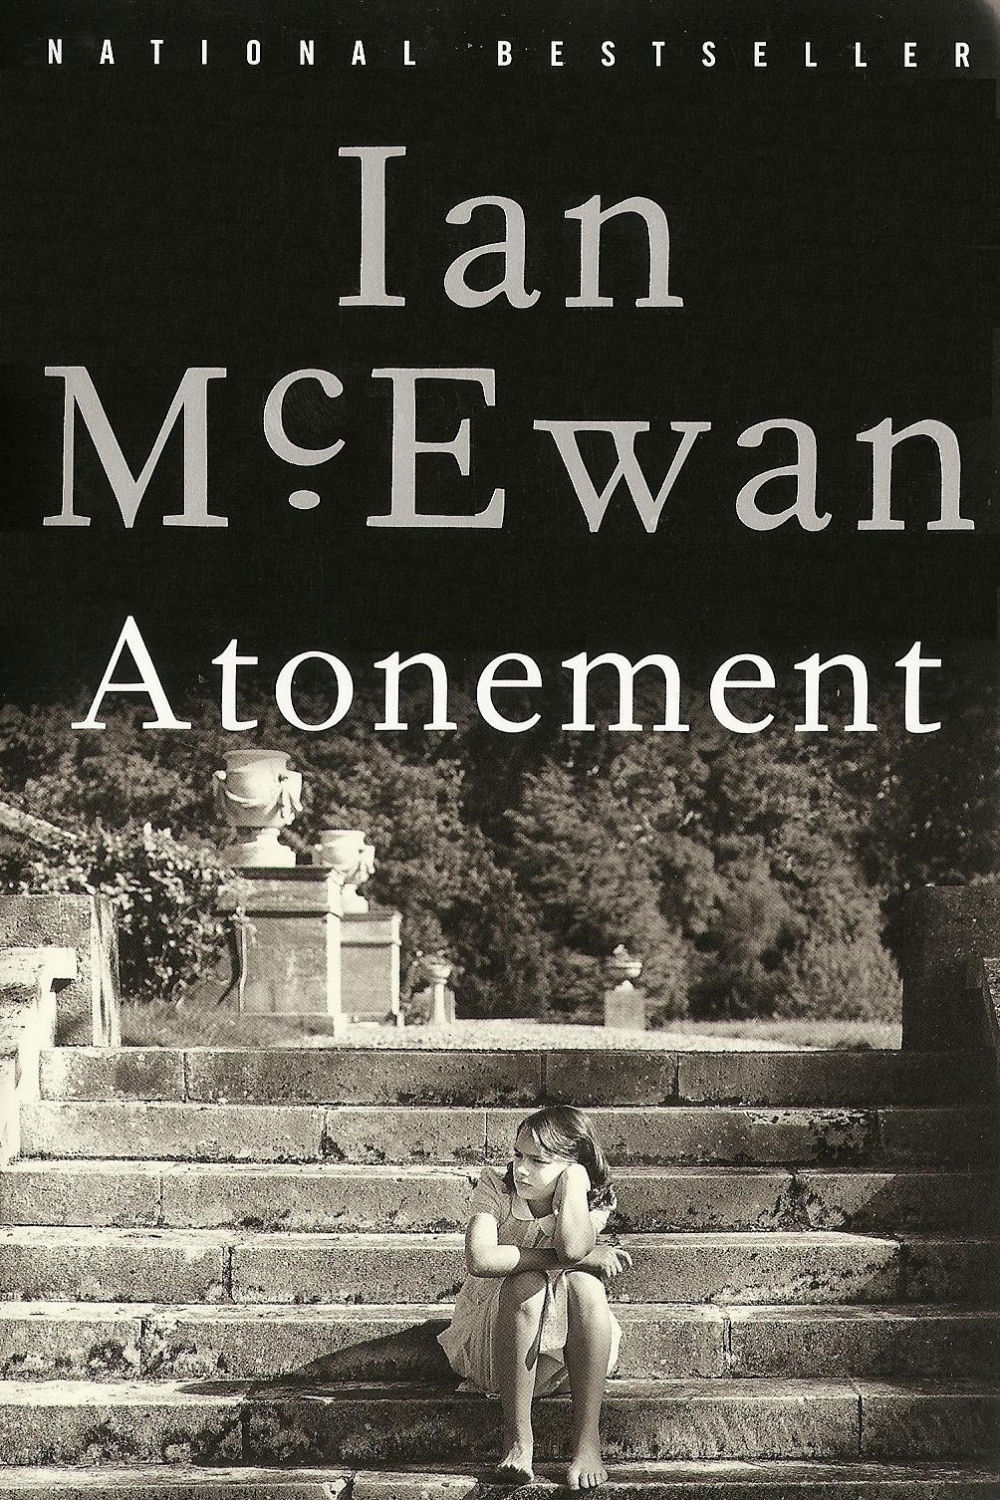 atonement by ian mcewan Once known as ian macabre or the clapham shocker, ian mcewan now has  critics and reviewers wonder whether he would not have gone soft with age.